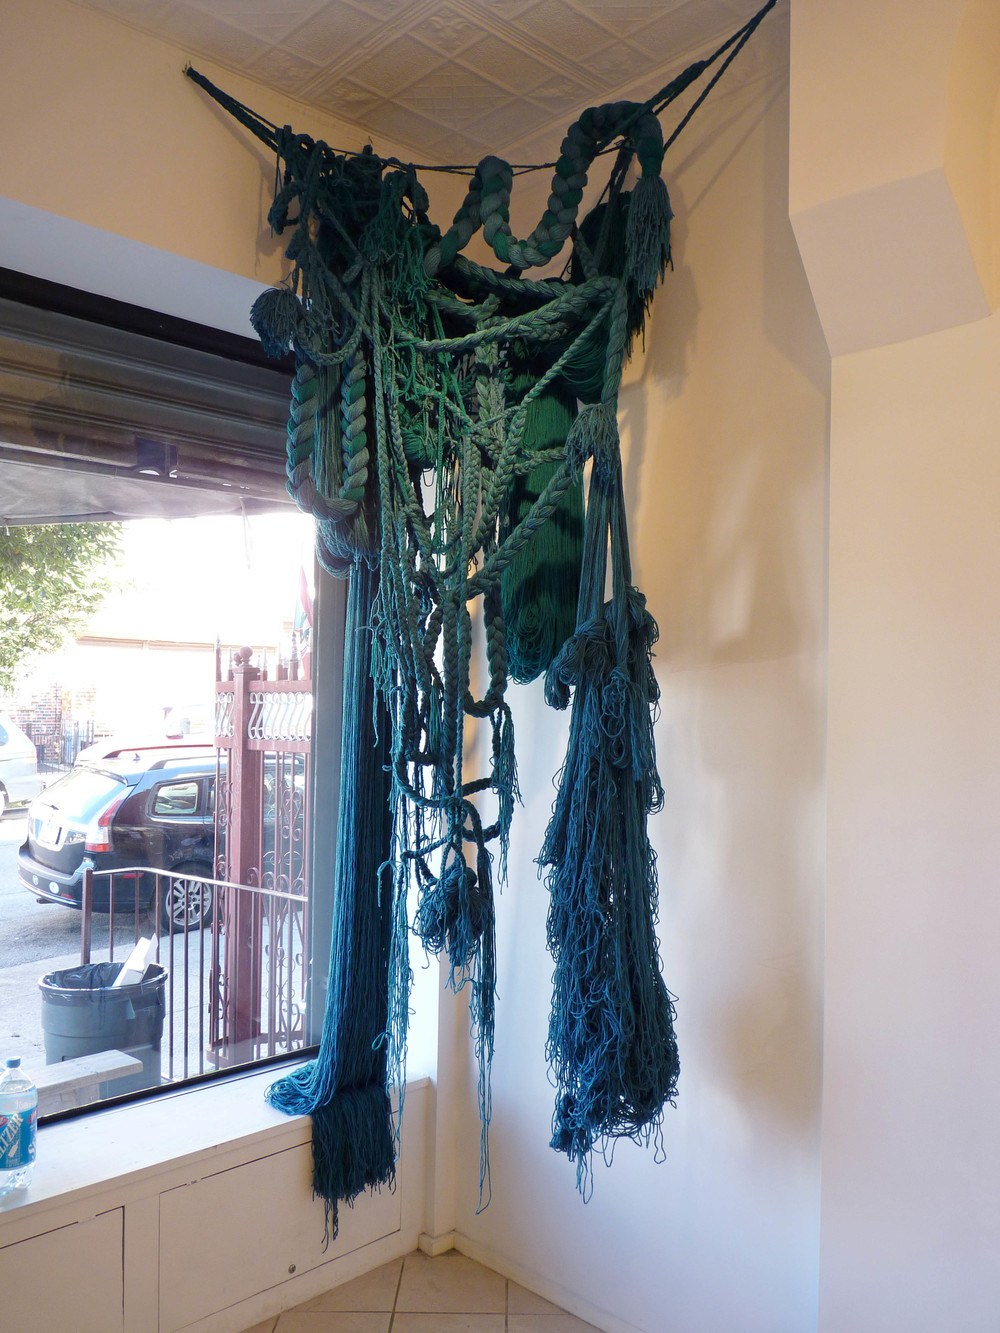 The Falls, 2010, Acrylic yarn, 5' x 3' x 9' (Installation)